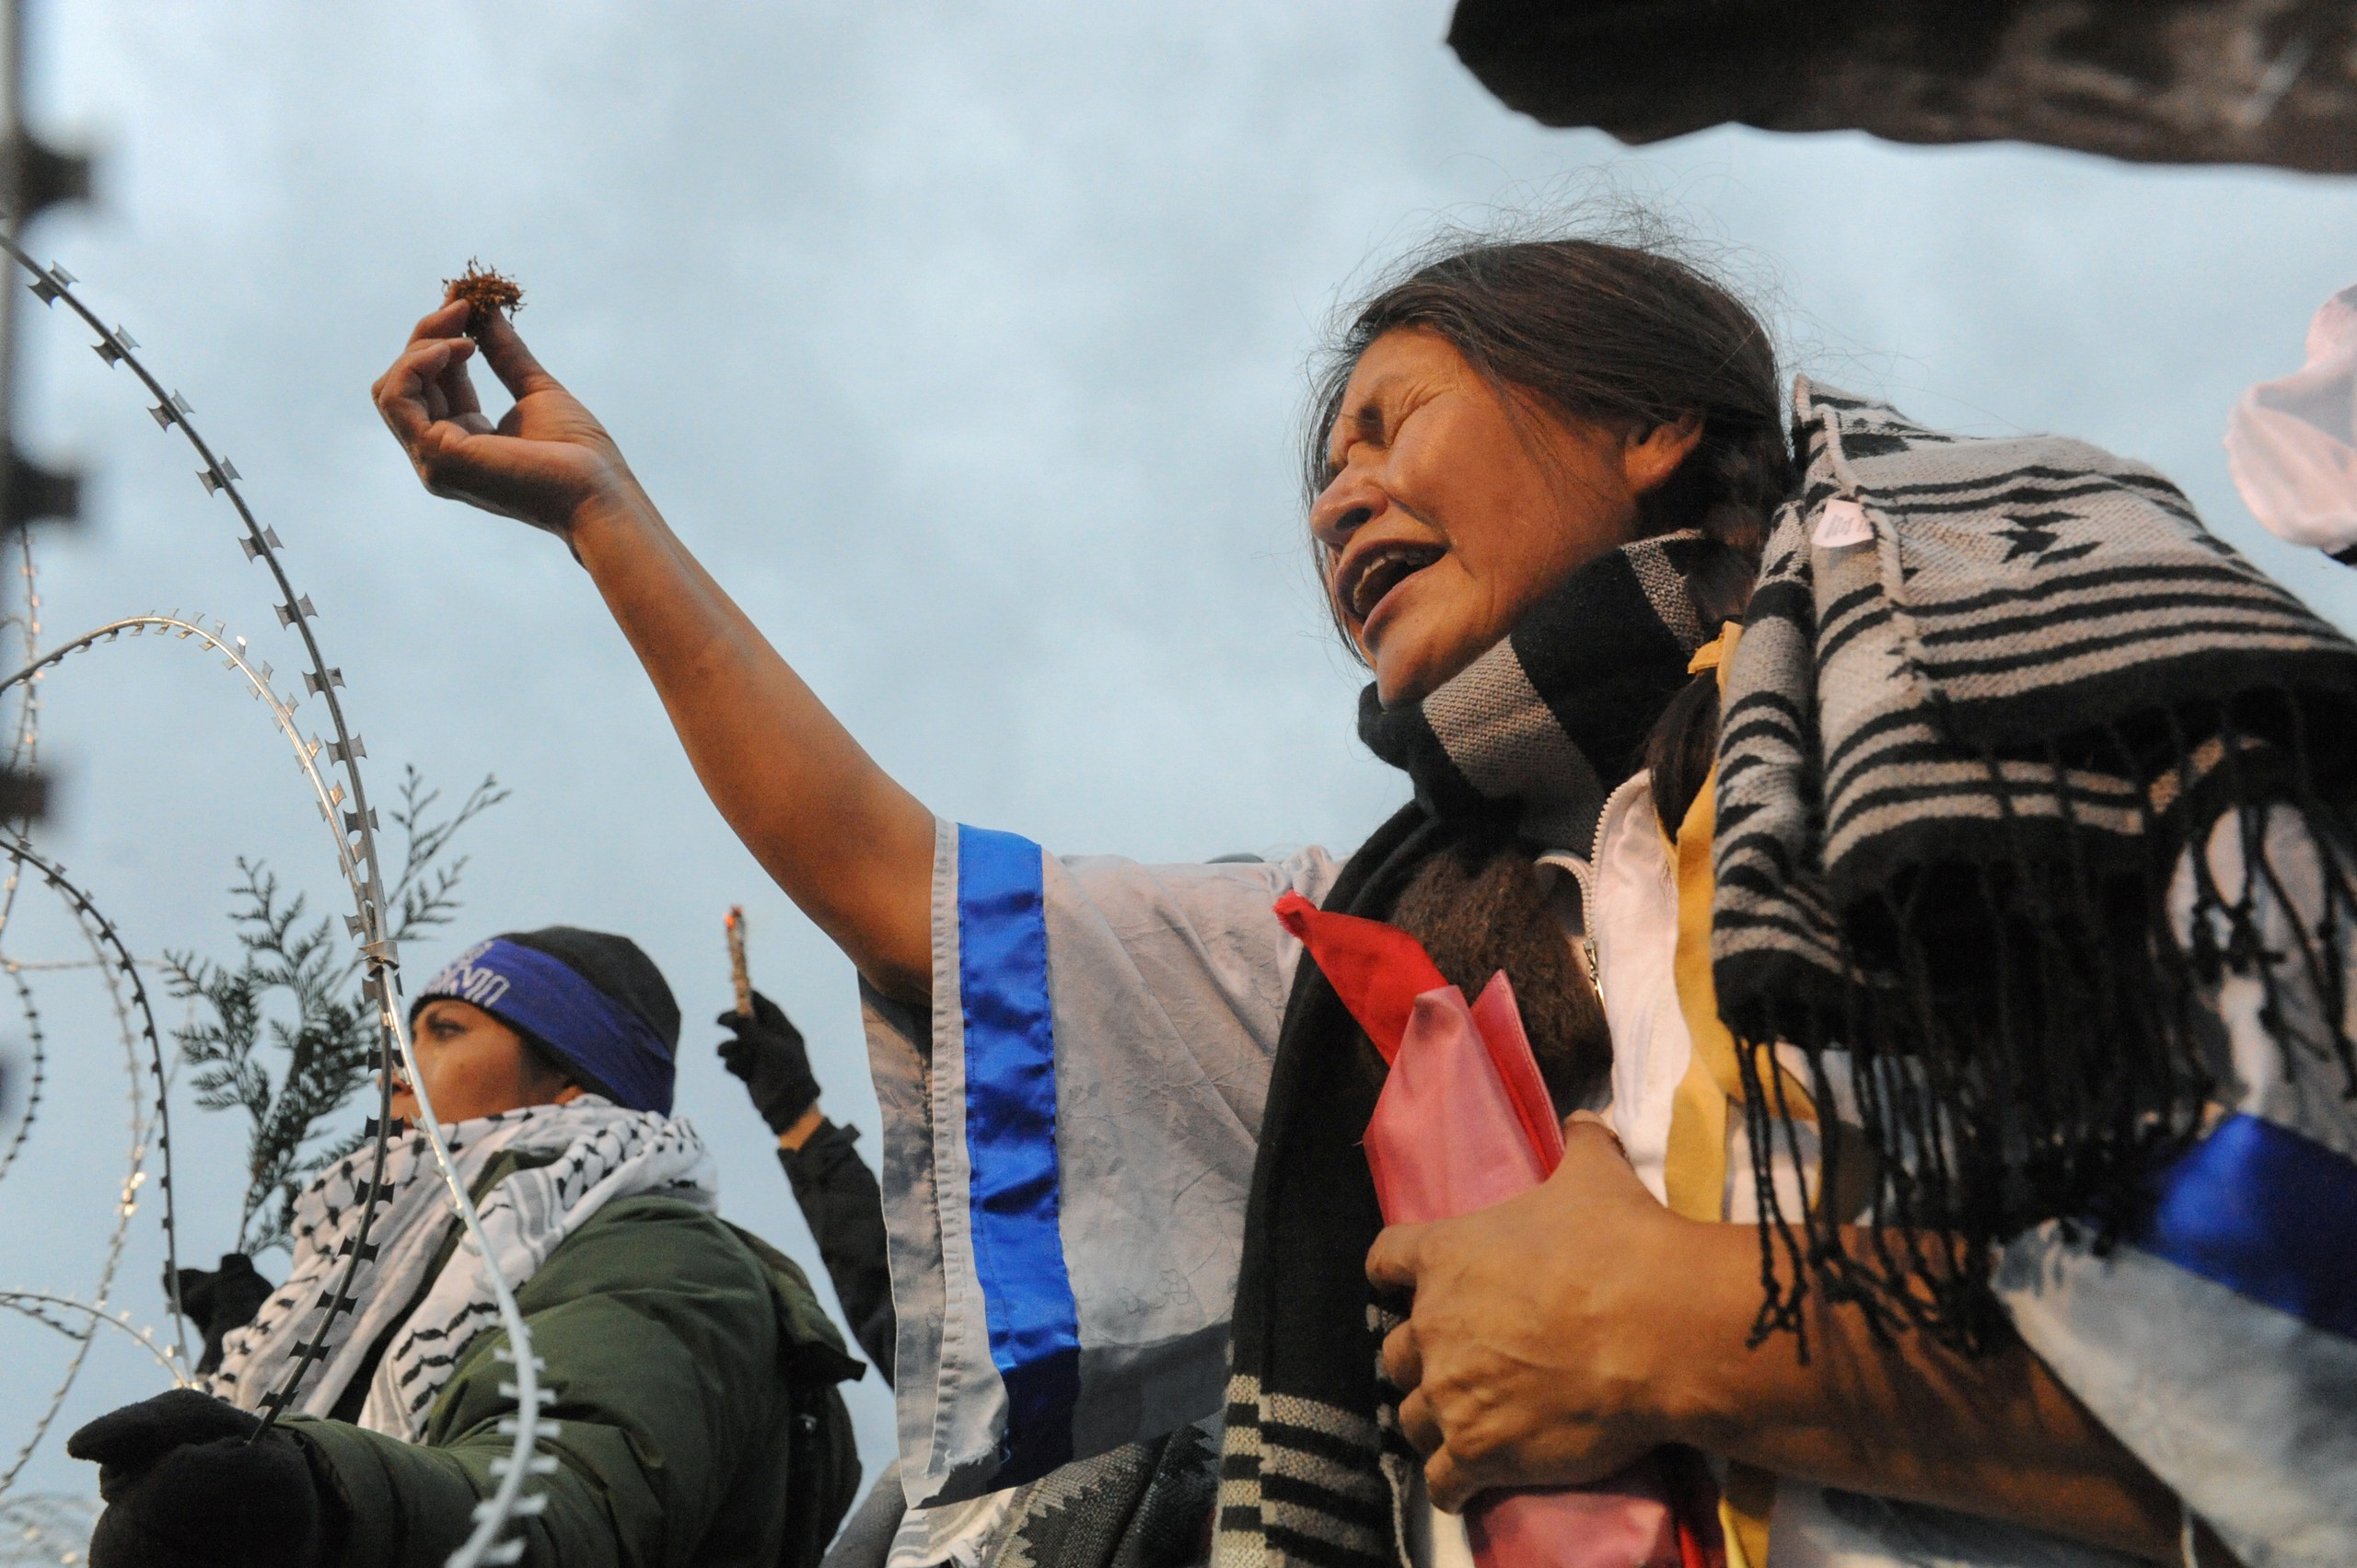 Cheryl Angel offers ceremonial tobacco on Backwater Bridge during a protest against plans to pass the Dakota Access pipeline near the Standing Rock Indian Reservation, near Cannon Ball, North Dakota, on Nov. 27, 2016.